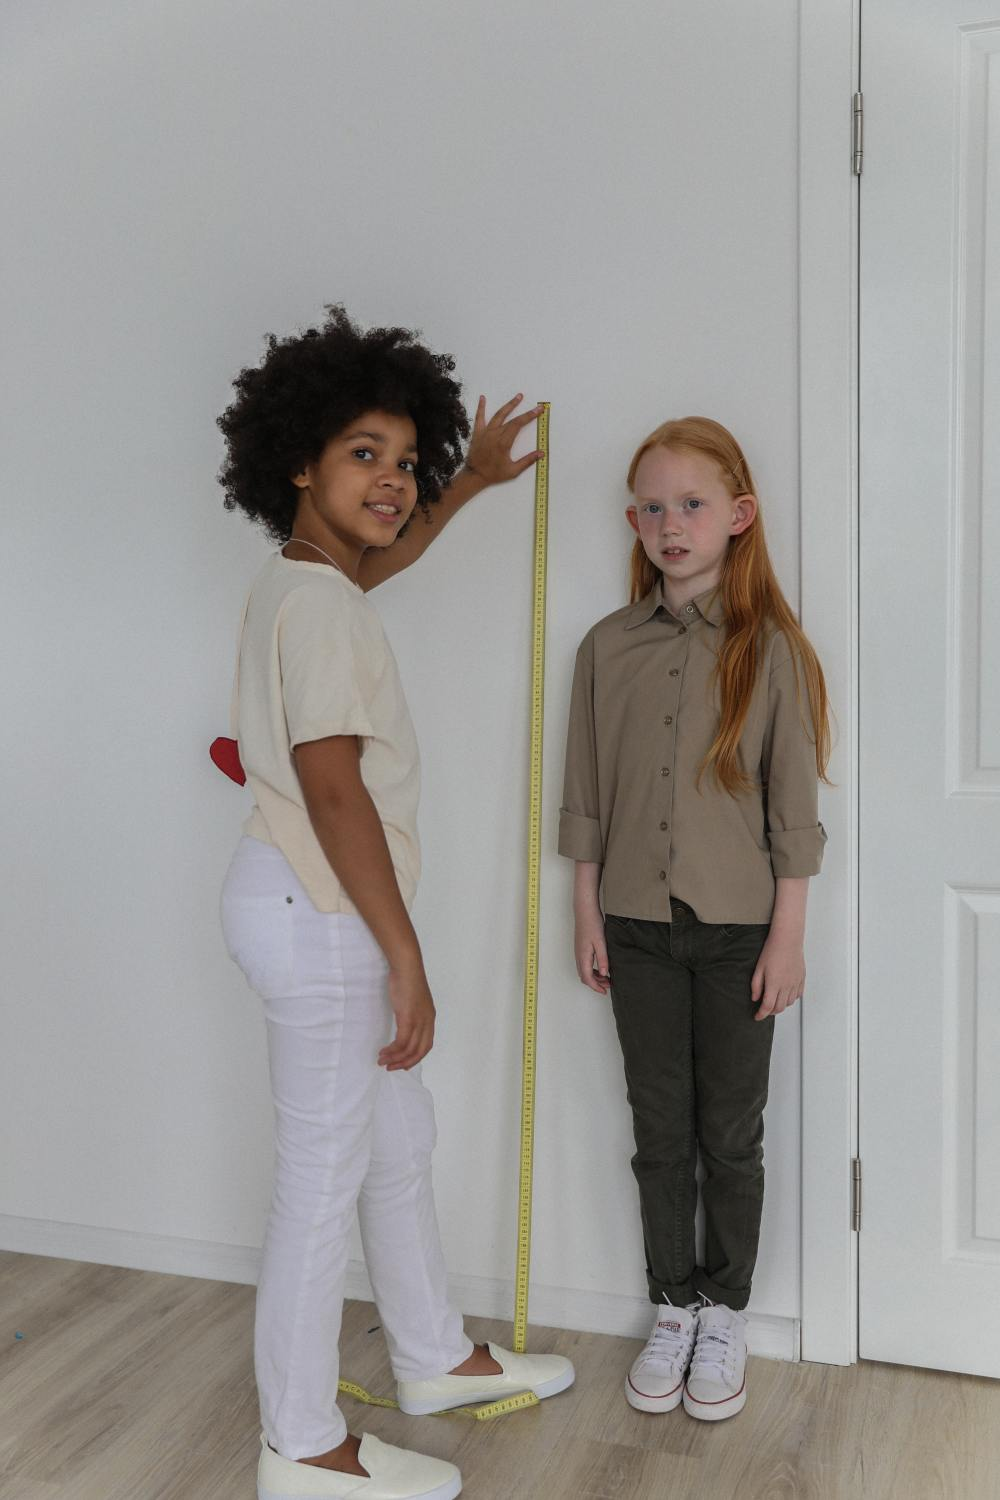 let's measure: here's the average height for women